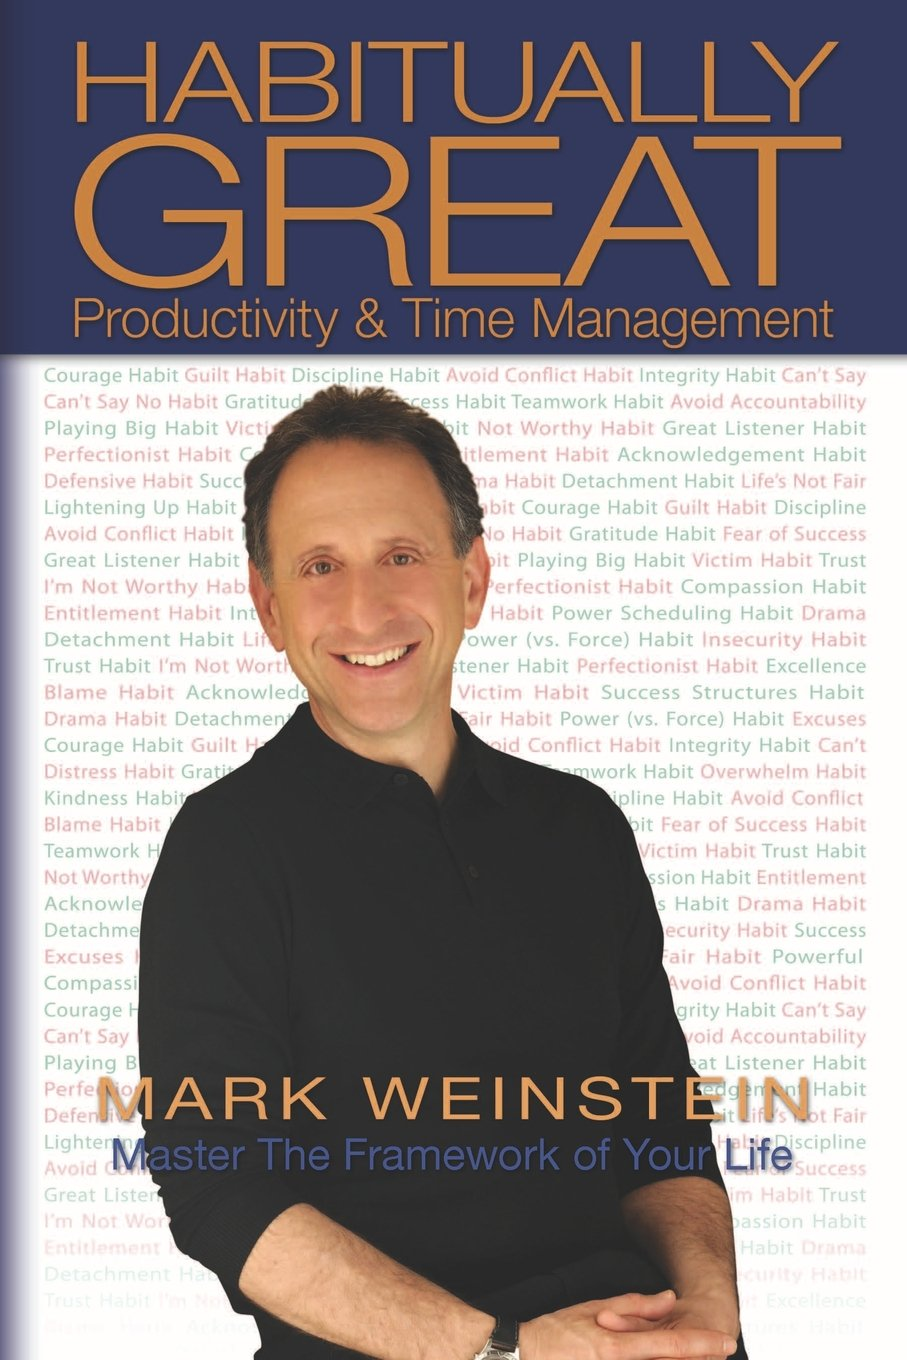 Habitually Great Productivity & Time Management